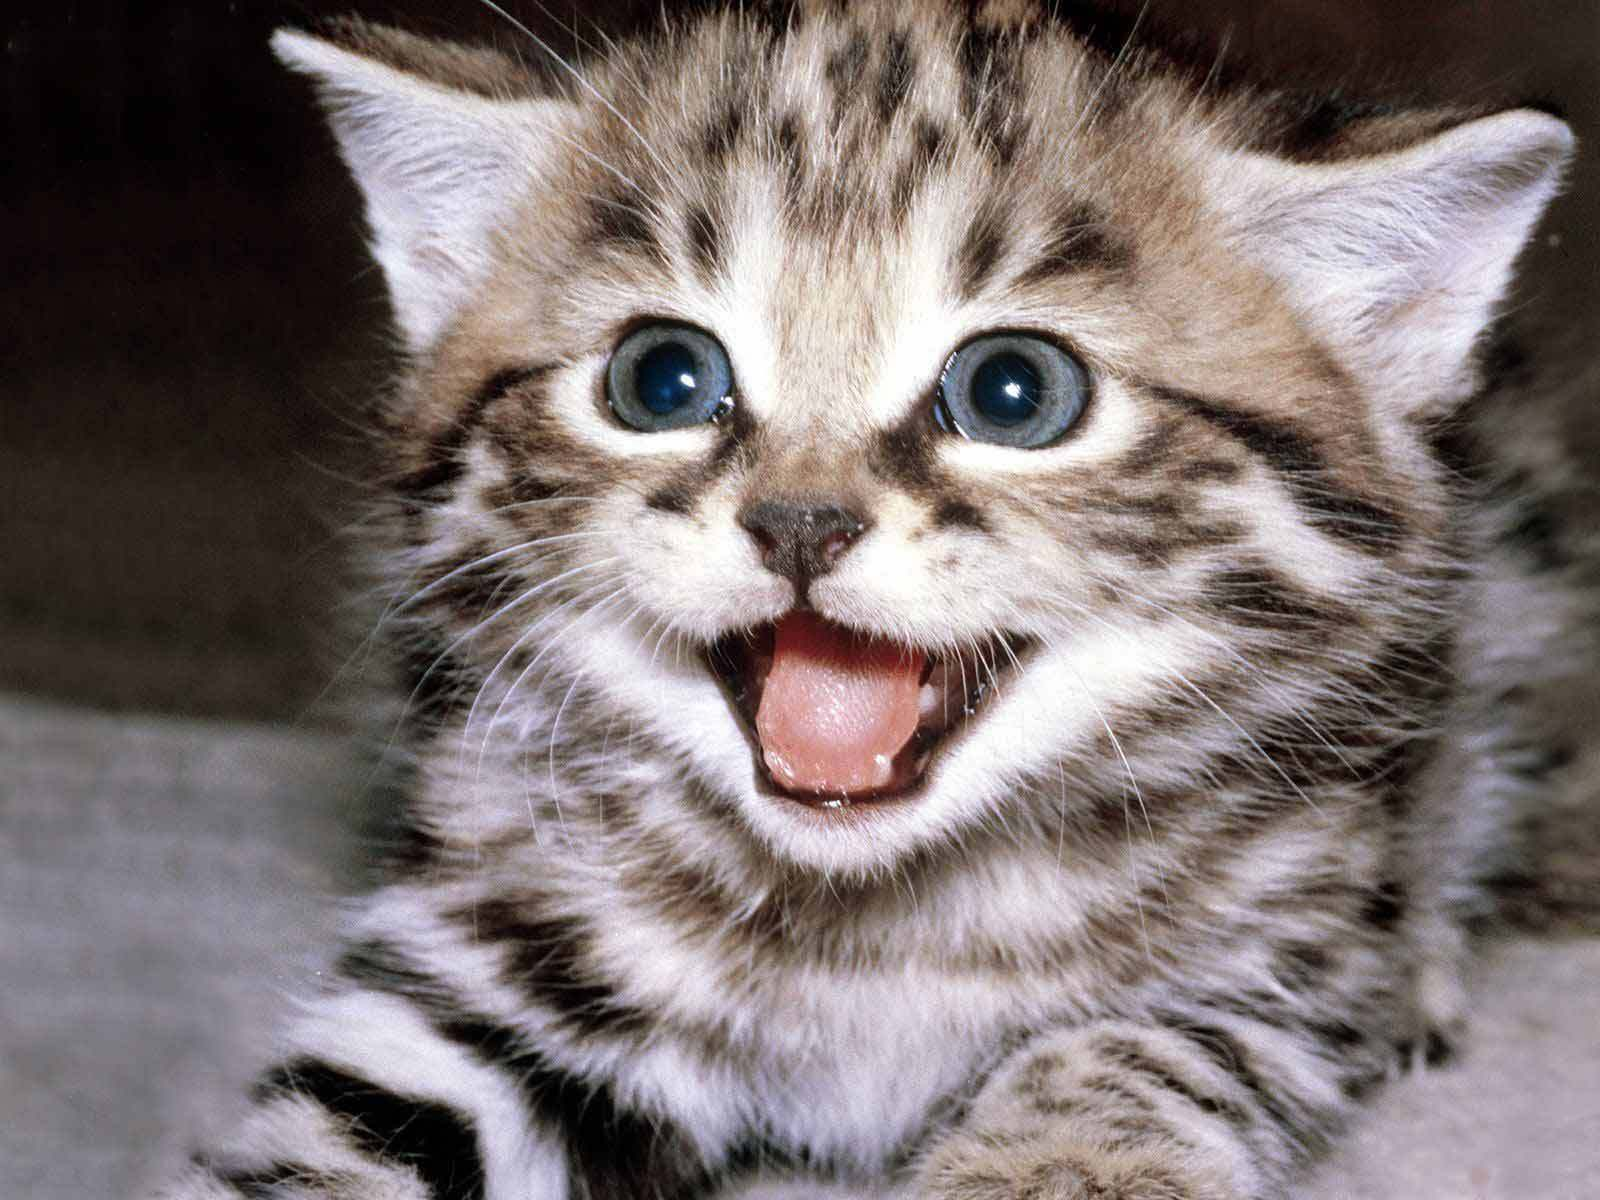 Cute-kittens-12929201-1600-1200 « Why Evolution Is True